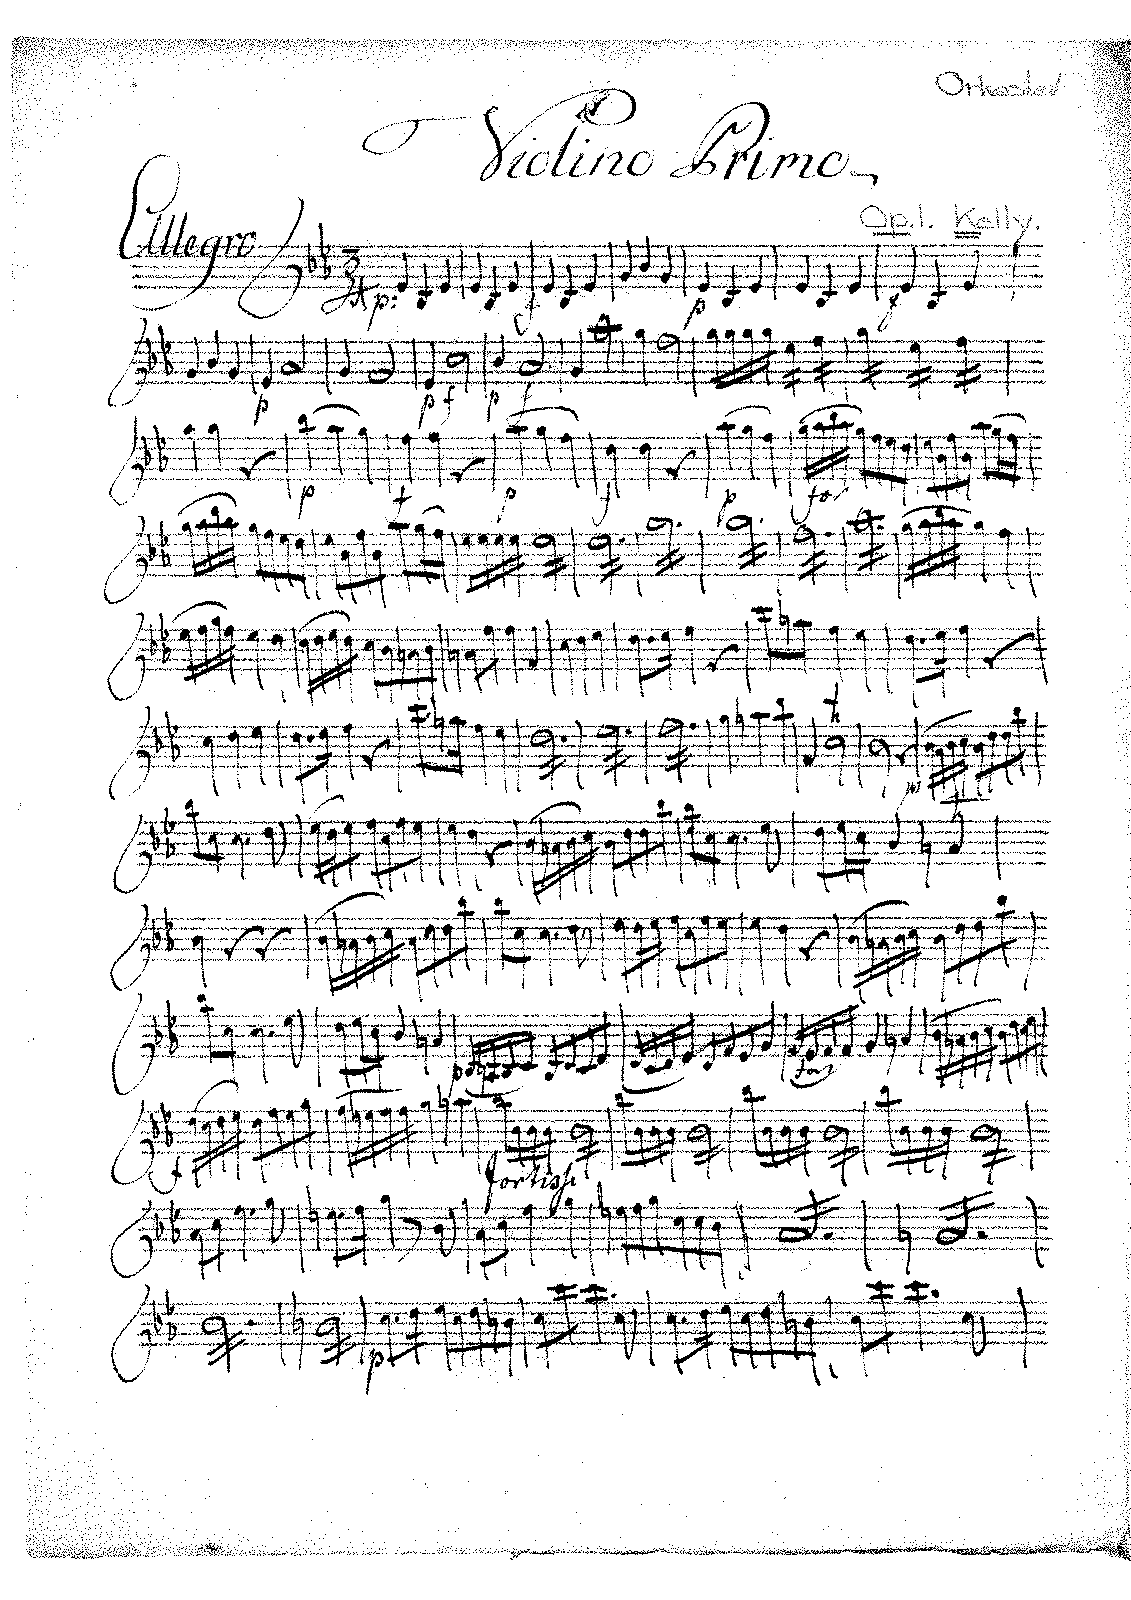 PMLP232413-Kelly Overture a 8 -op.1 no.4- -Eb- MS.pdf